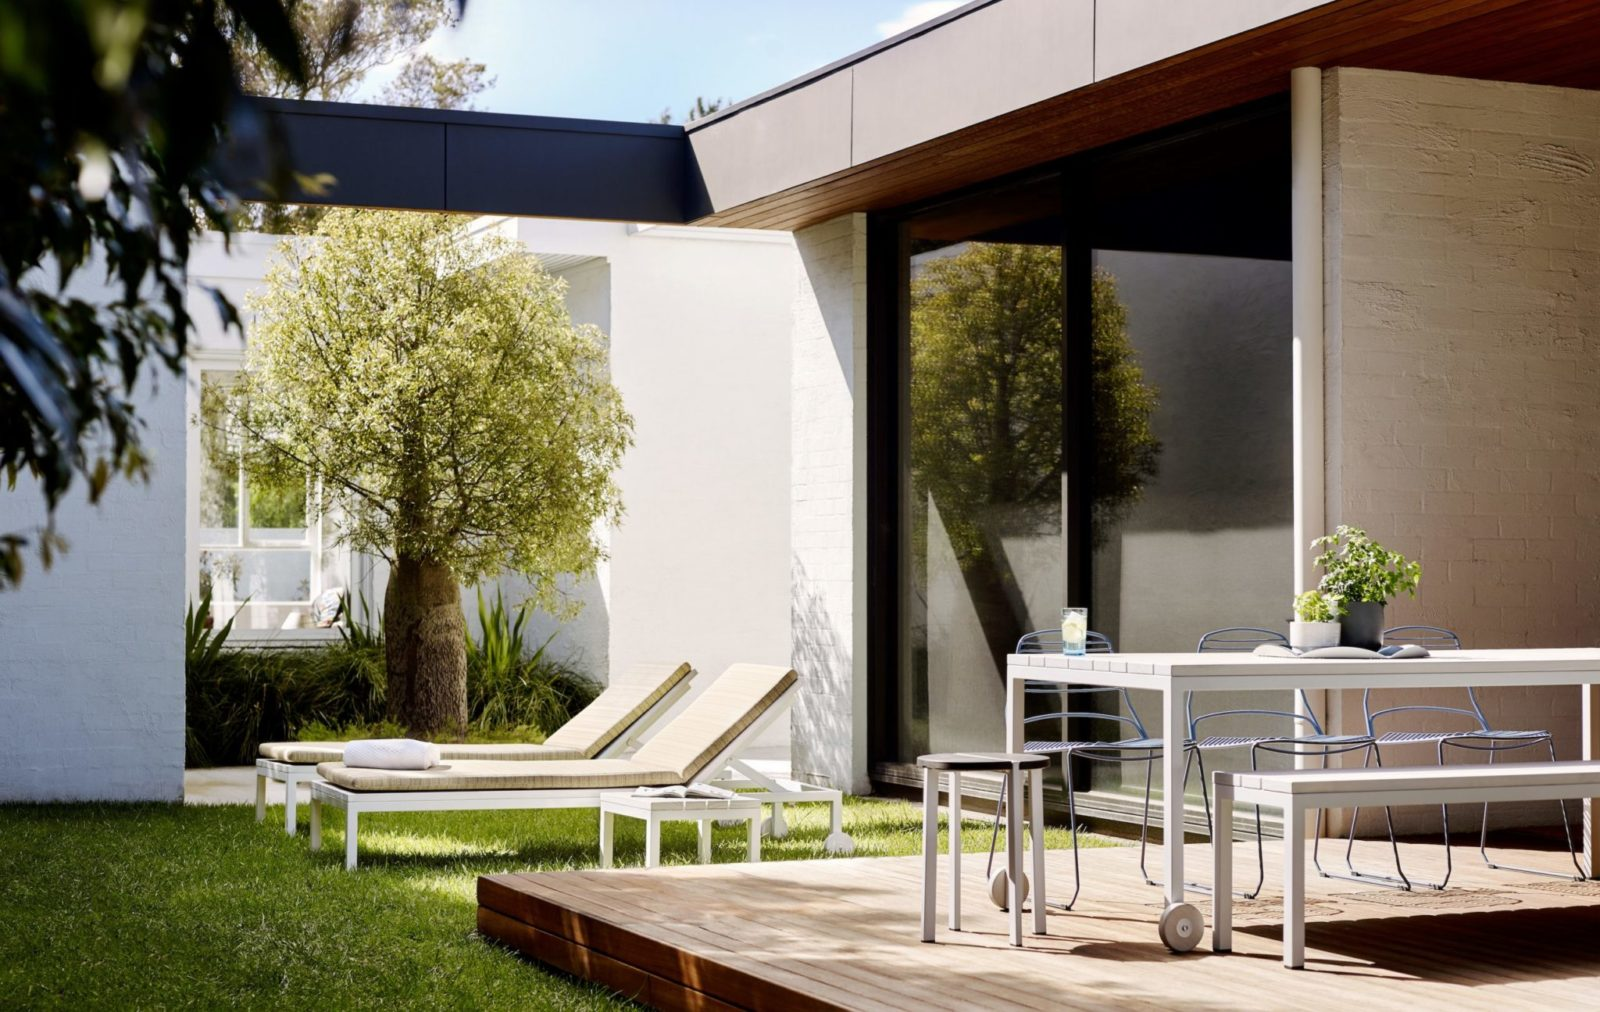 Clean lines and a cool aesthetic define Linear Modern Outdoor Bench Seat, with irregular slats adding optical texture to each form.